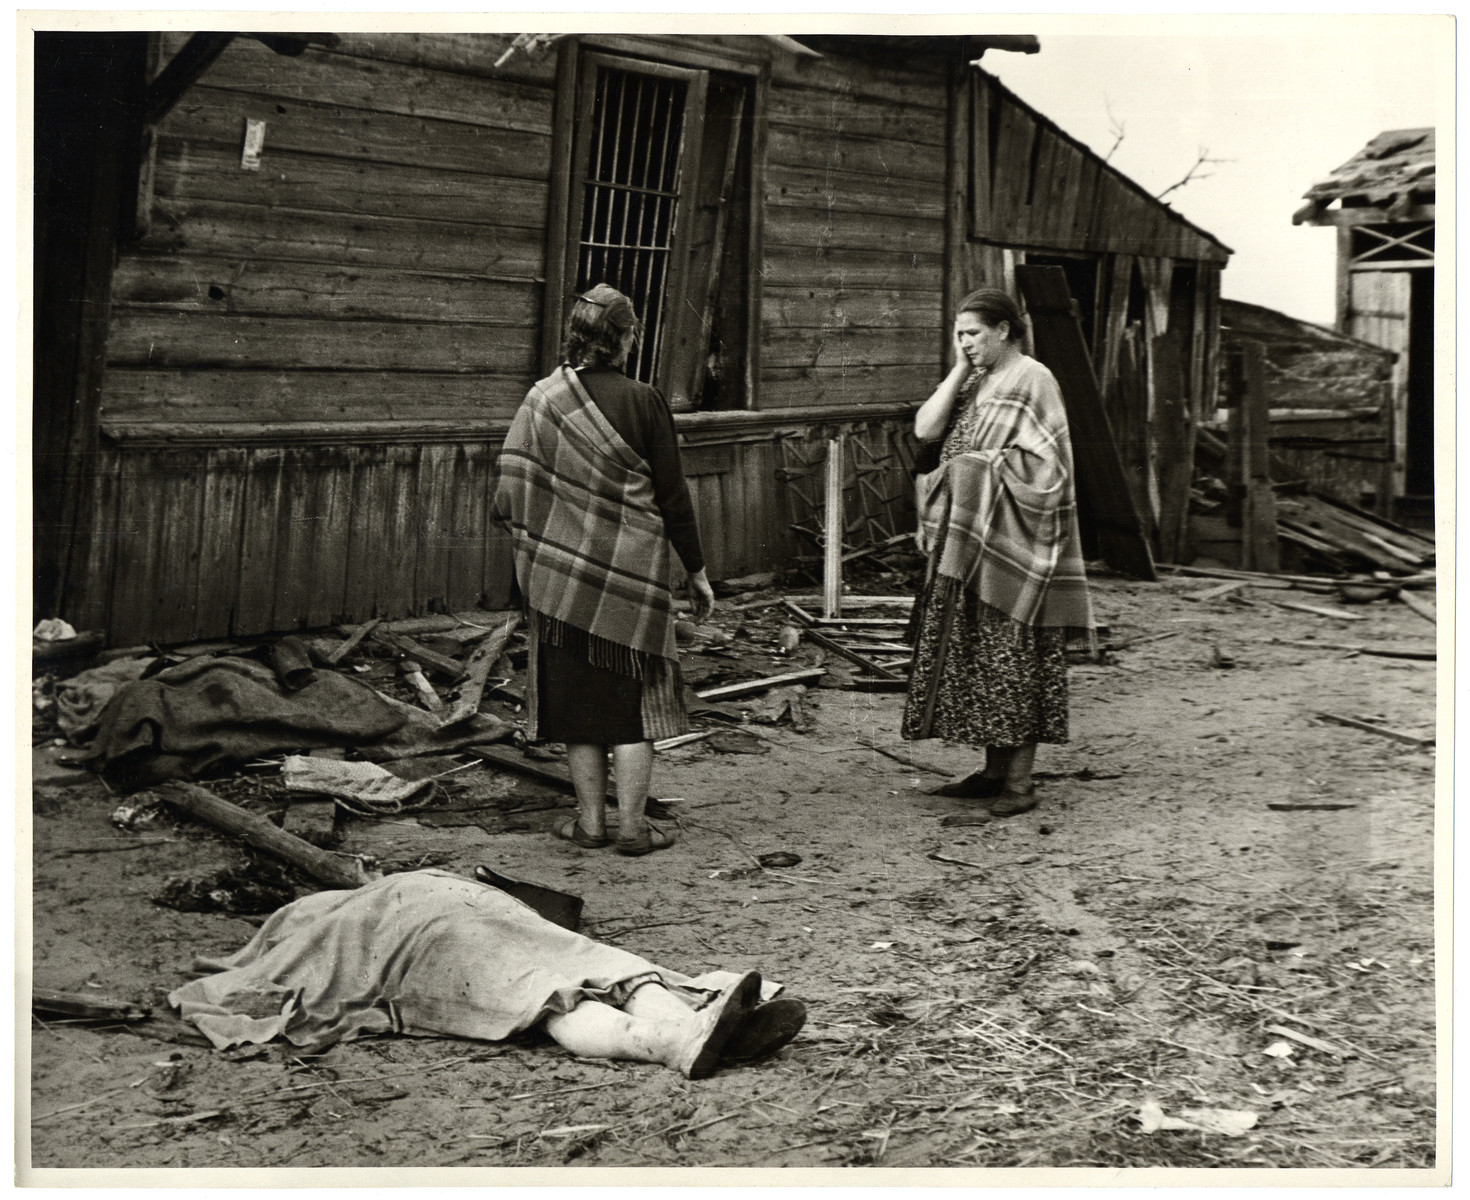 Two Polish women stand horrified after the destruction of their homes by the Germans - in the foreground is the corpse of one of the women killed in the air raid.